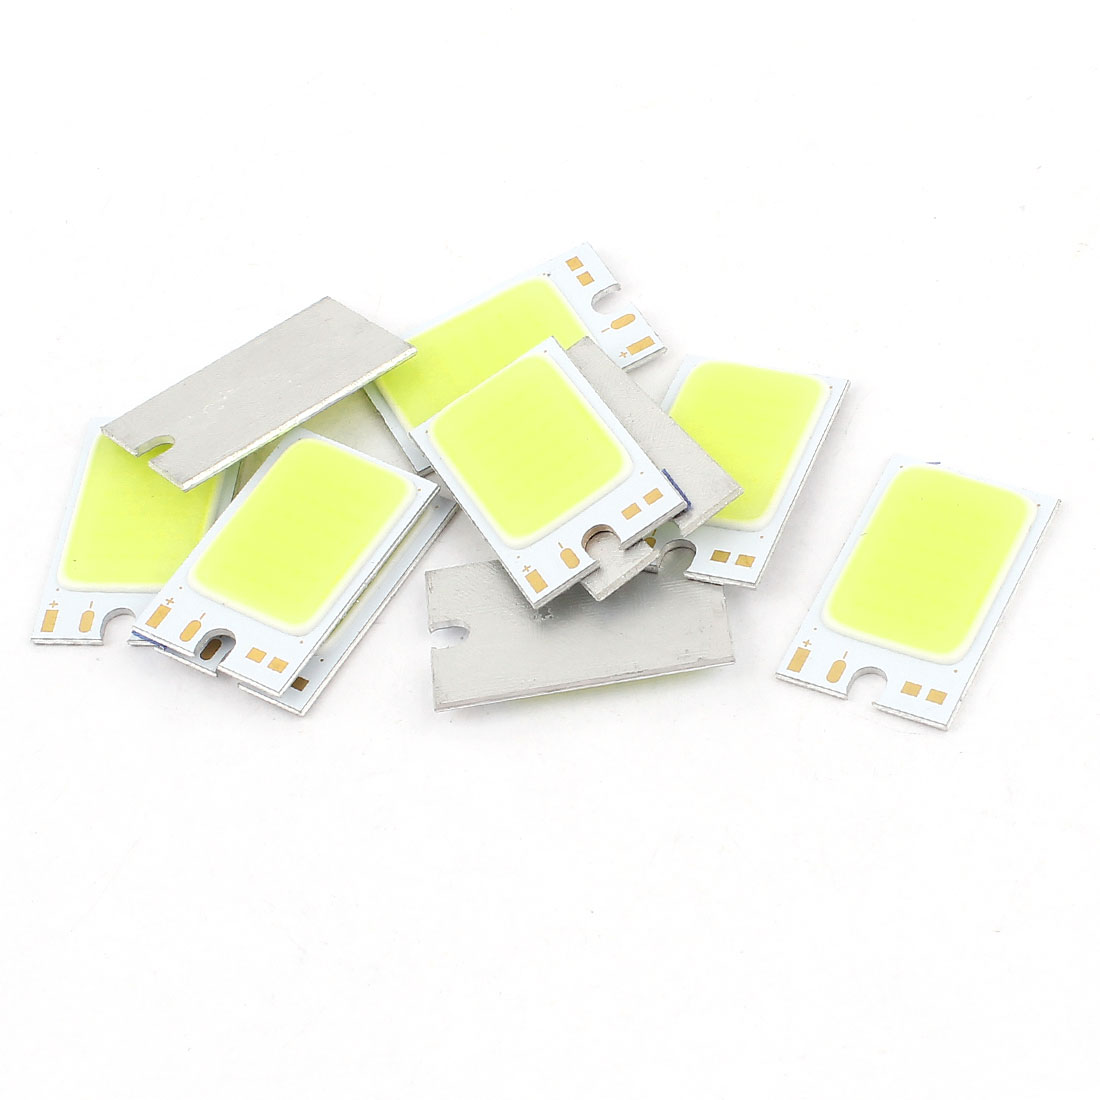 1.5W DC9-11V 150mA 80-90LM/W White LED Light COB Lamp Bead Chip 10pcs